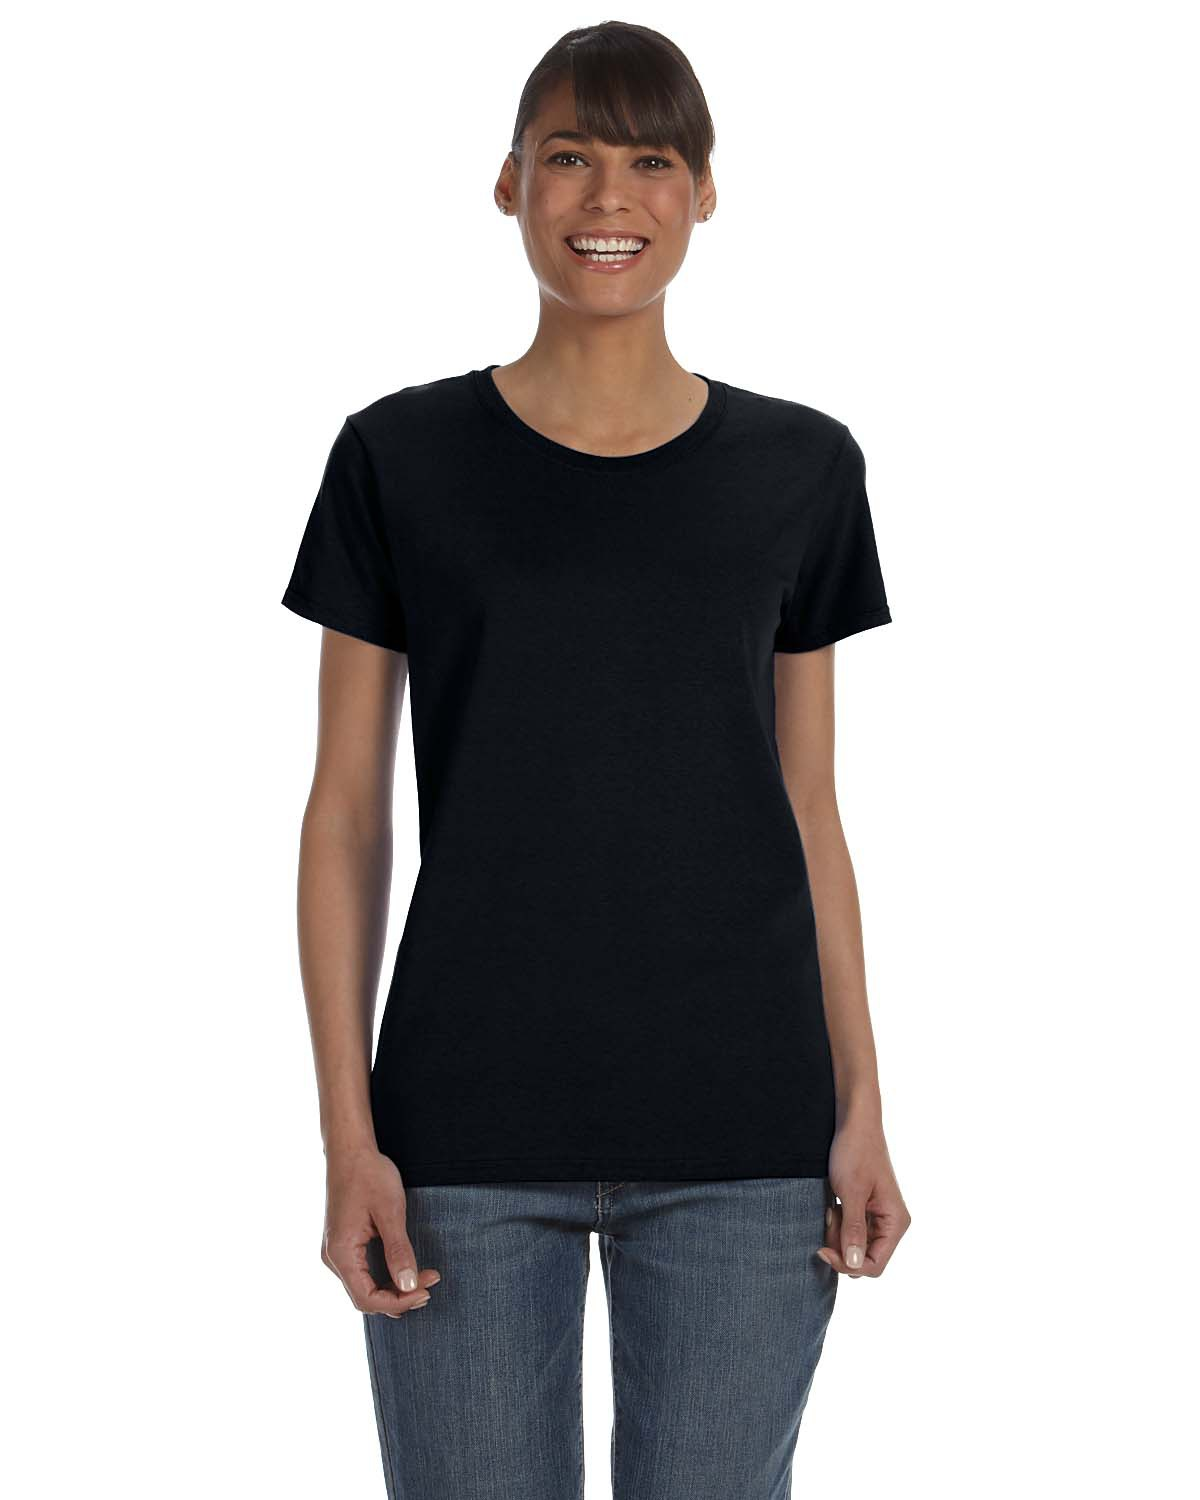 Gildan 5000l missy fit heavy cotton short sleeve t shirt Womens black tee shirt